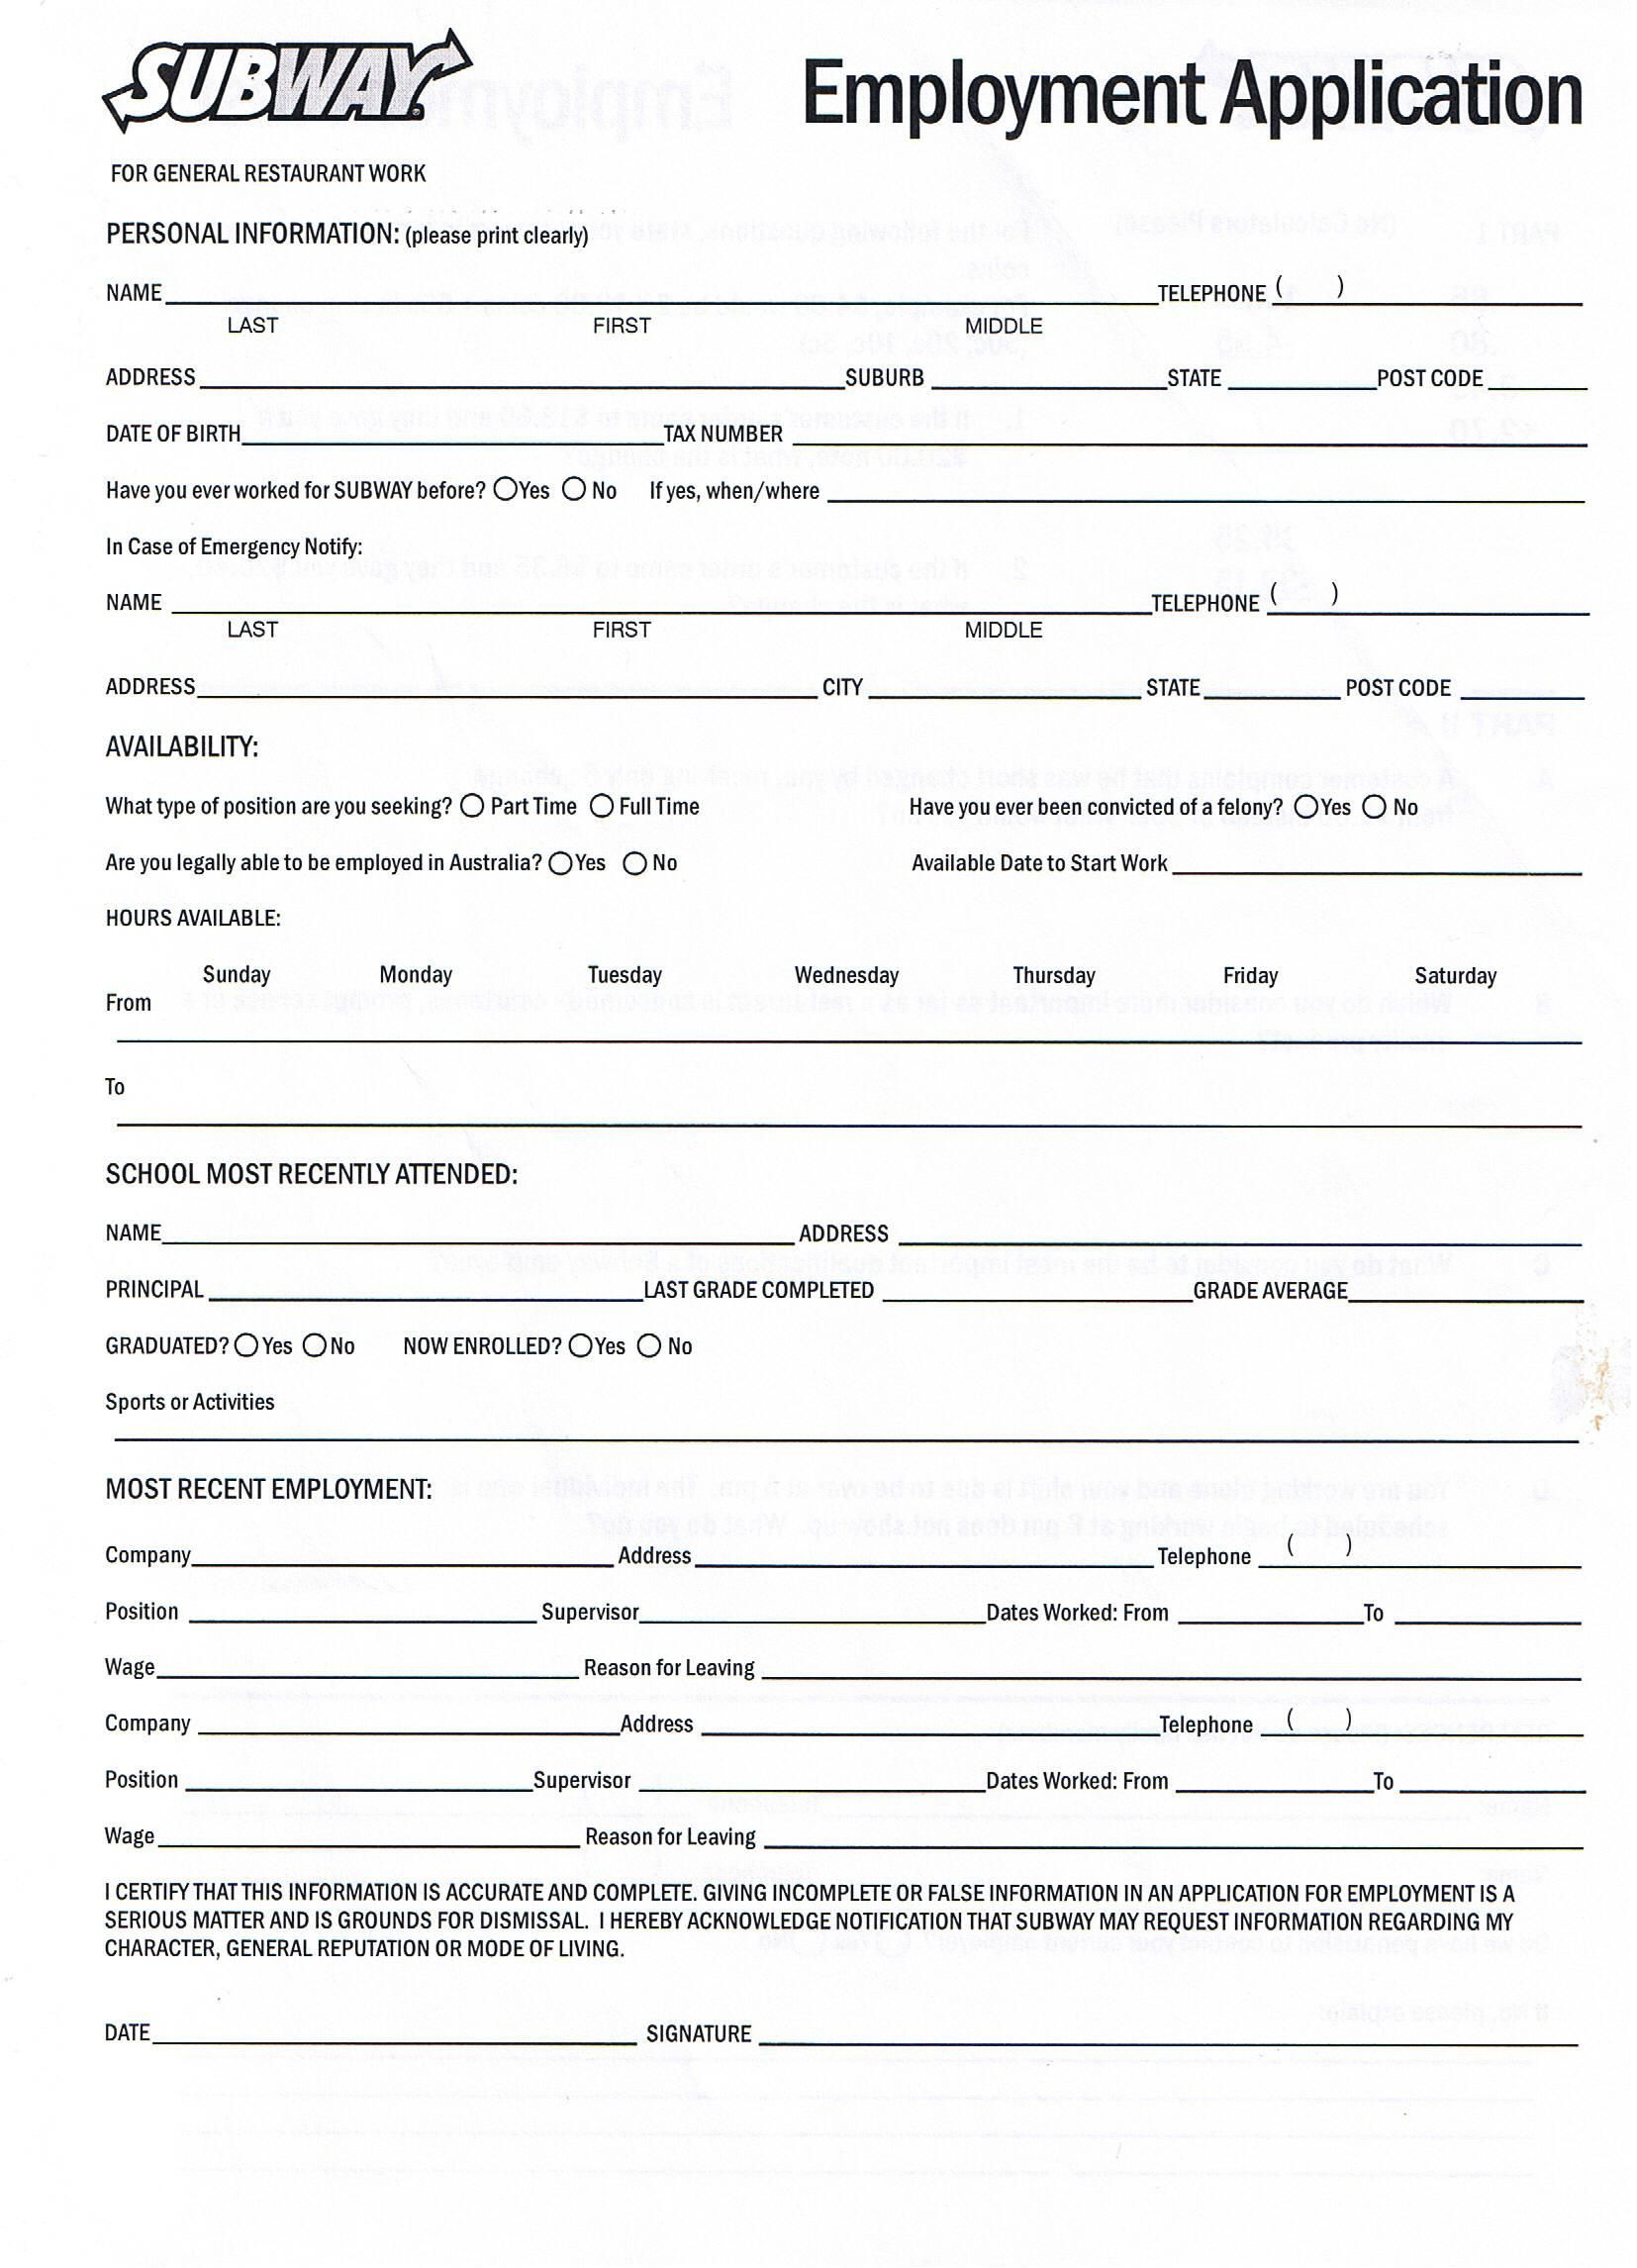 printable job application forms online forms download and print generic blank and sample job or employment applications forms for free